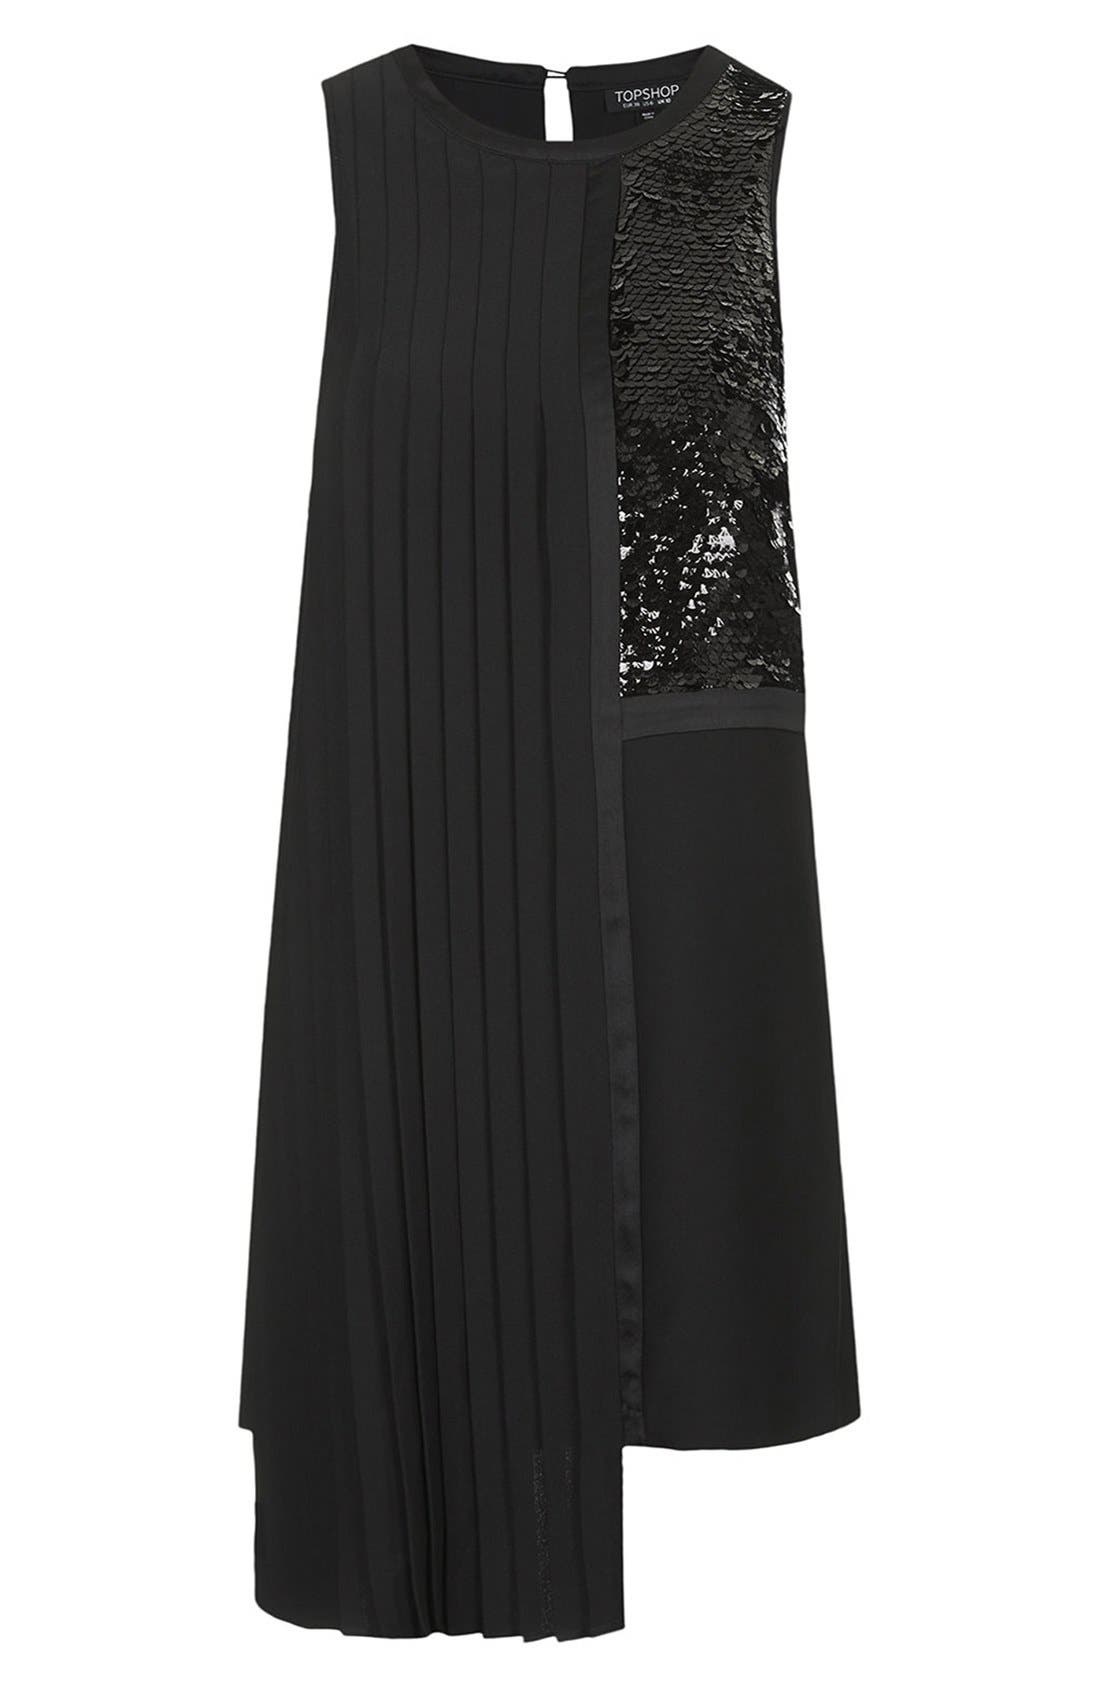 Alternate Image 3  - Topshop Sequin and Pleat Panel Shift Dress